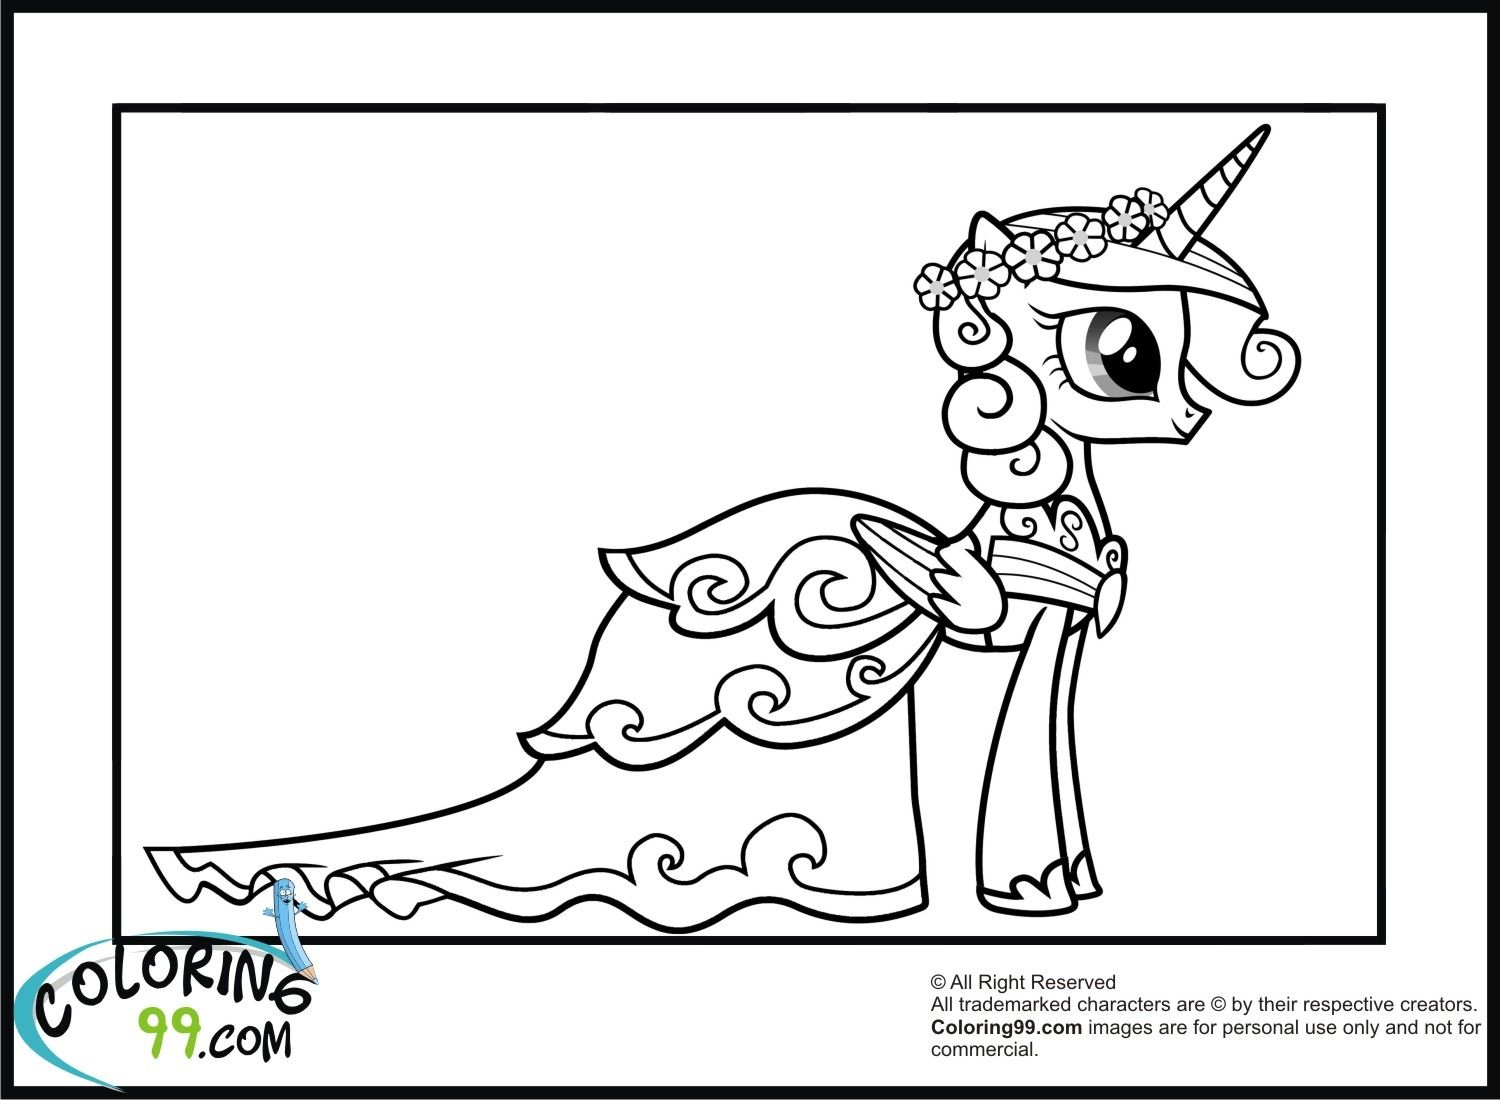 Coloring pages of princess cadence - My Little Pony Princess Cadence Coloring Pages